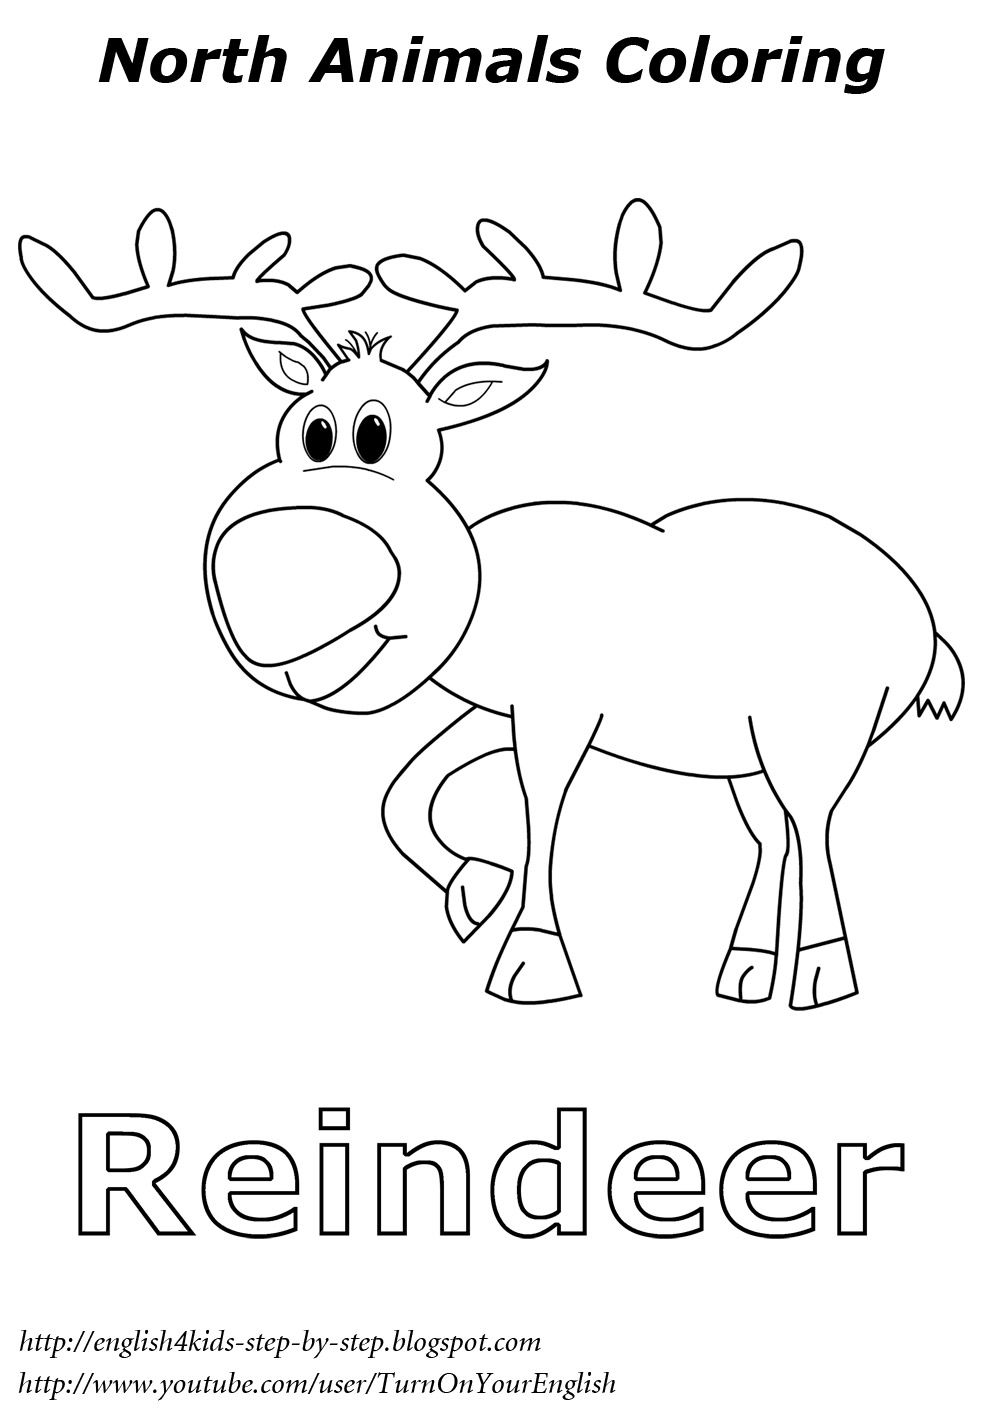 Reindeer Christmas Coloring North Animal Coloring Esl Christmas Animals Arctic Animals Animal Coloring Pages